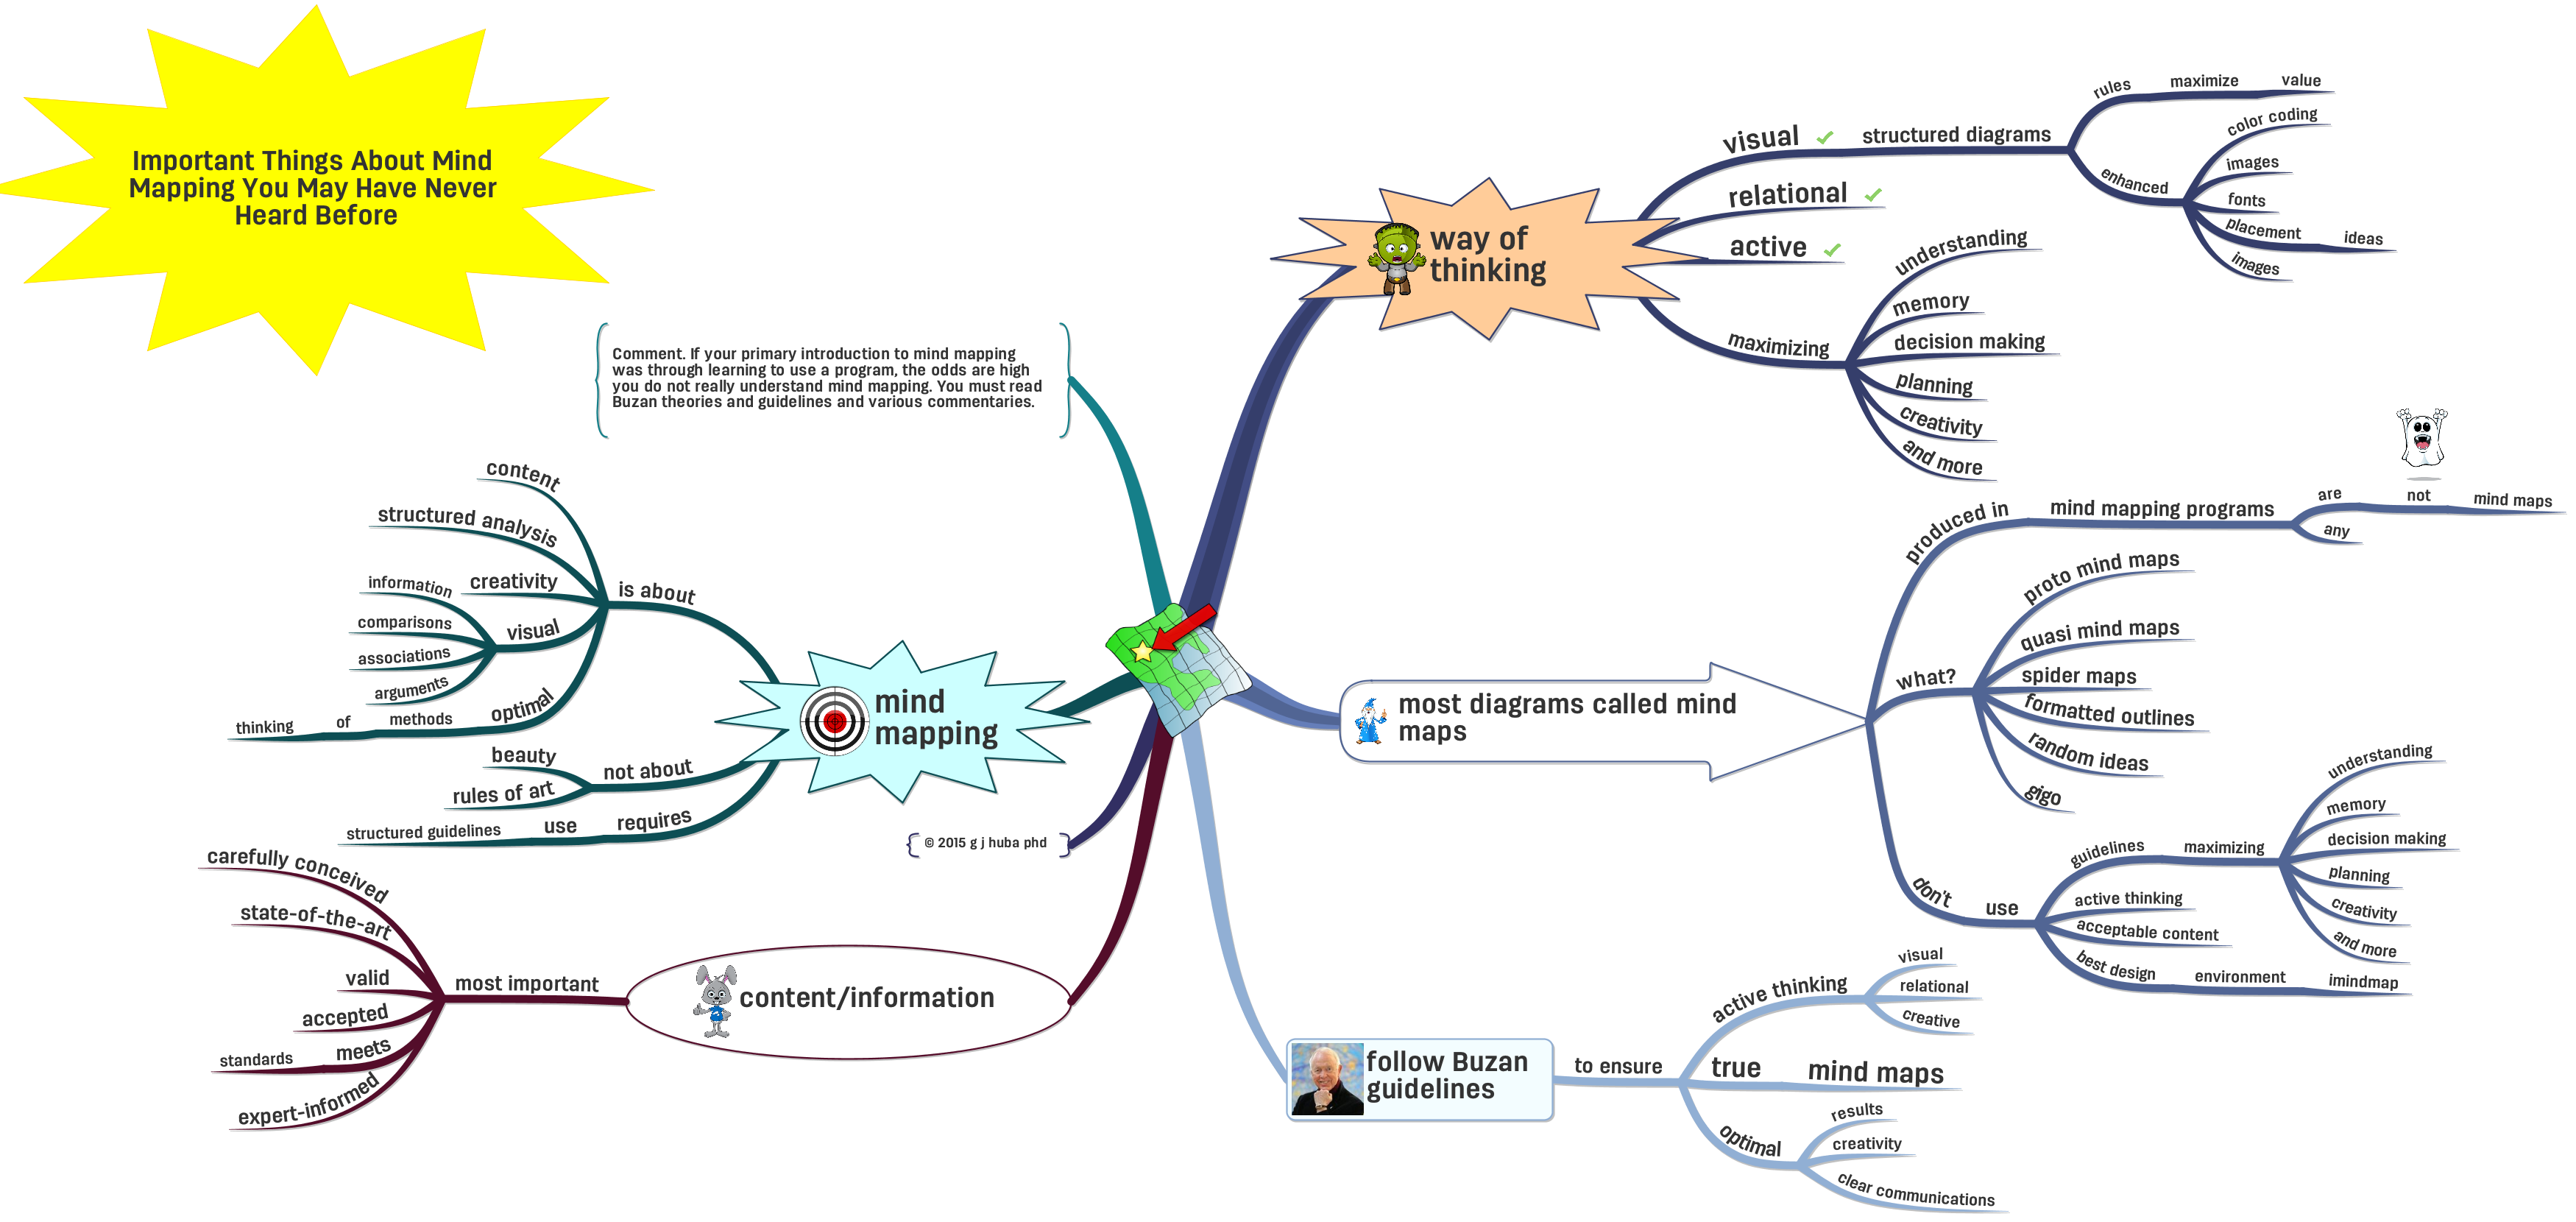 important things about mind mapping